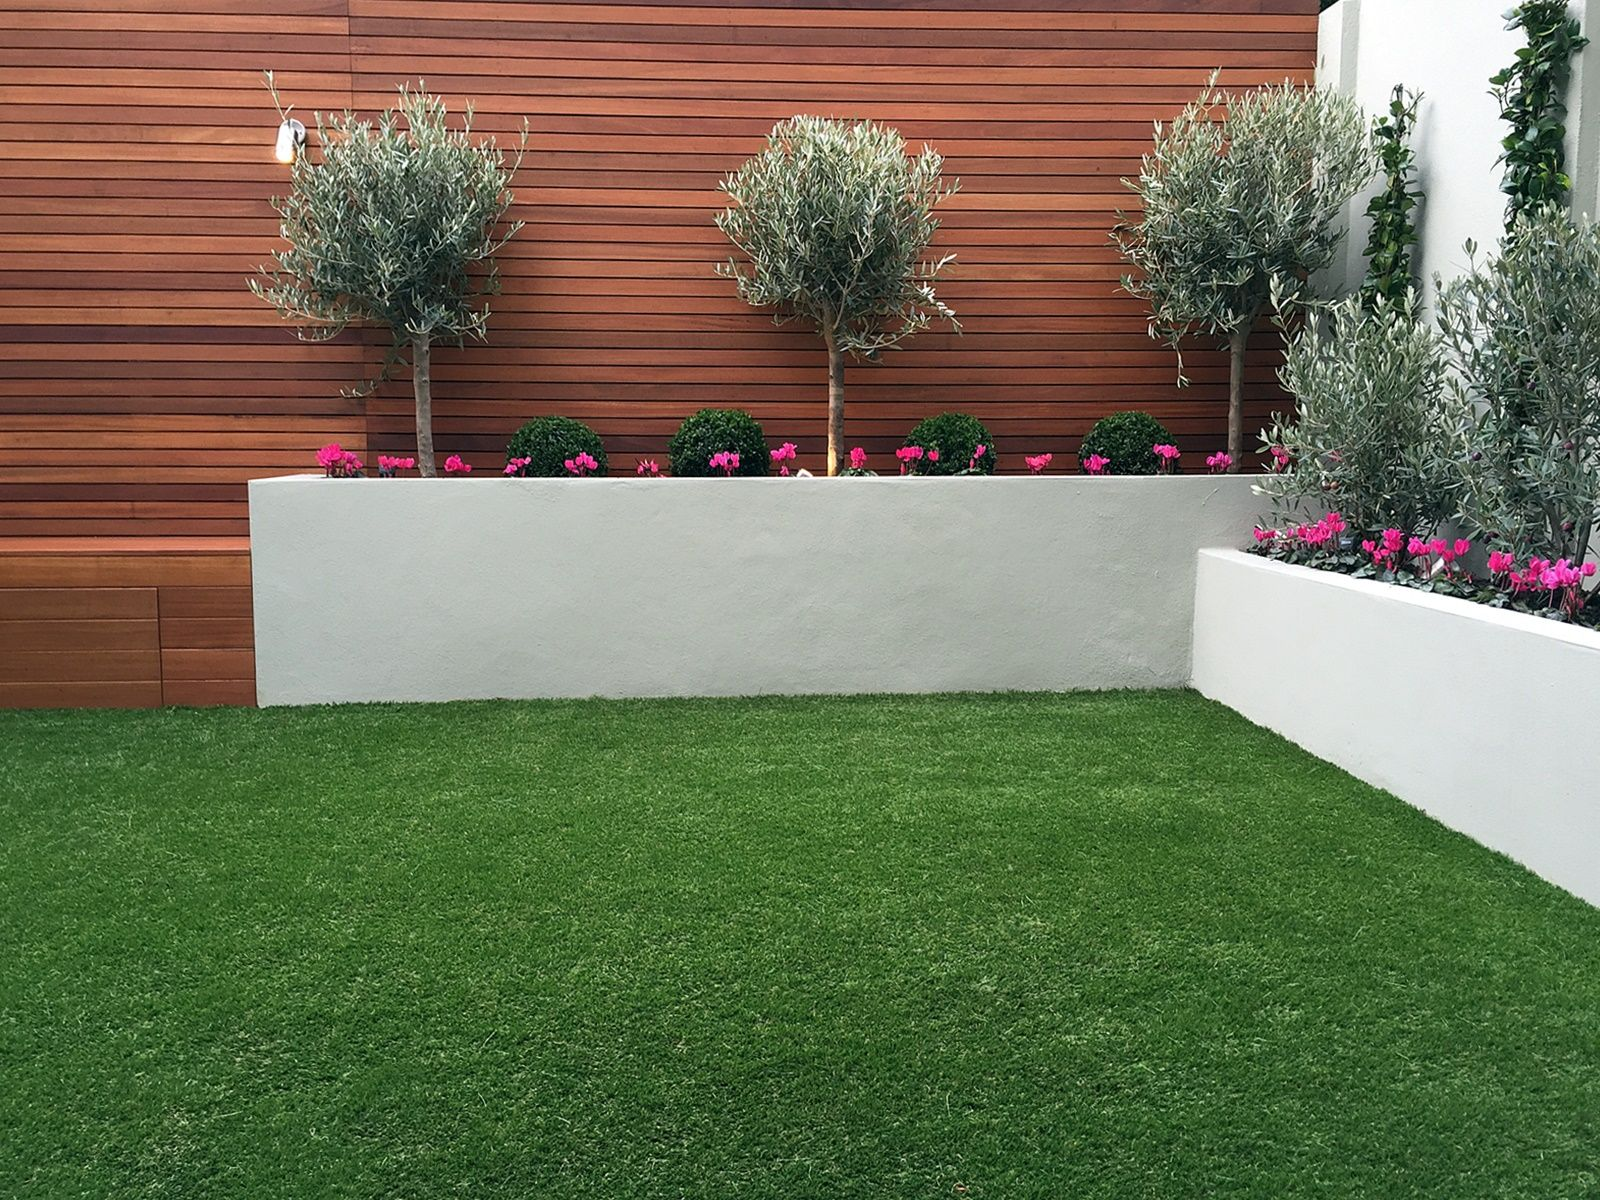 Raised grey beds topiary hardwood horizontal privacy screen fake